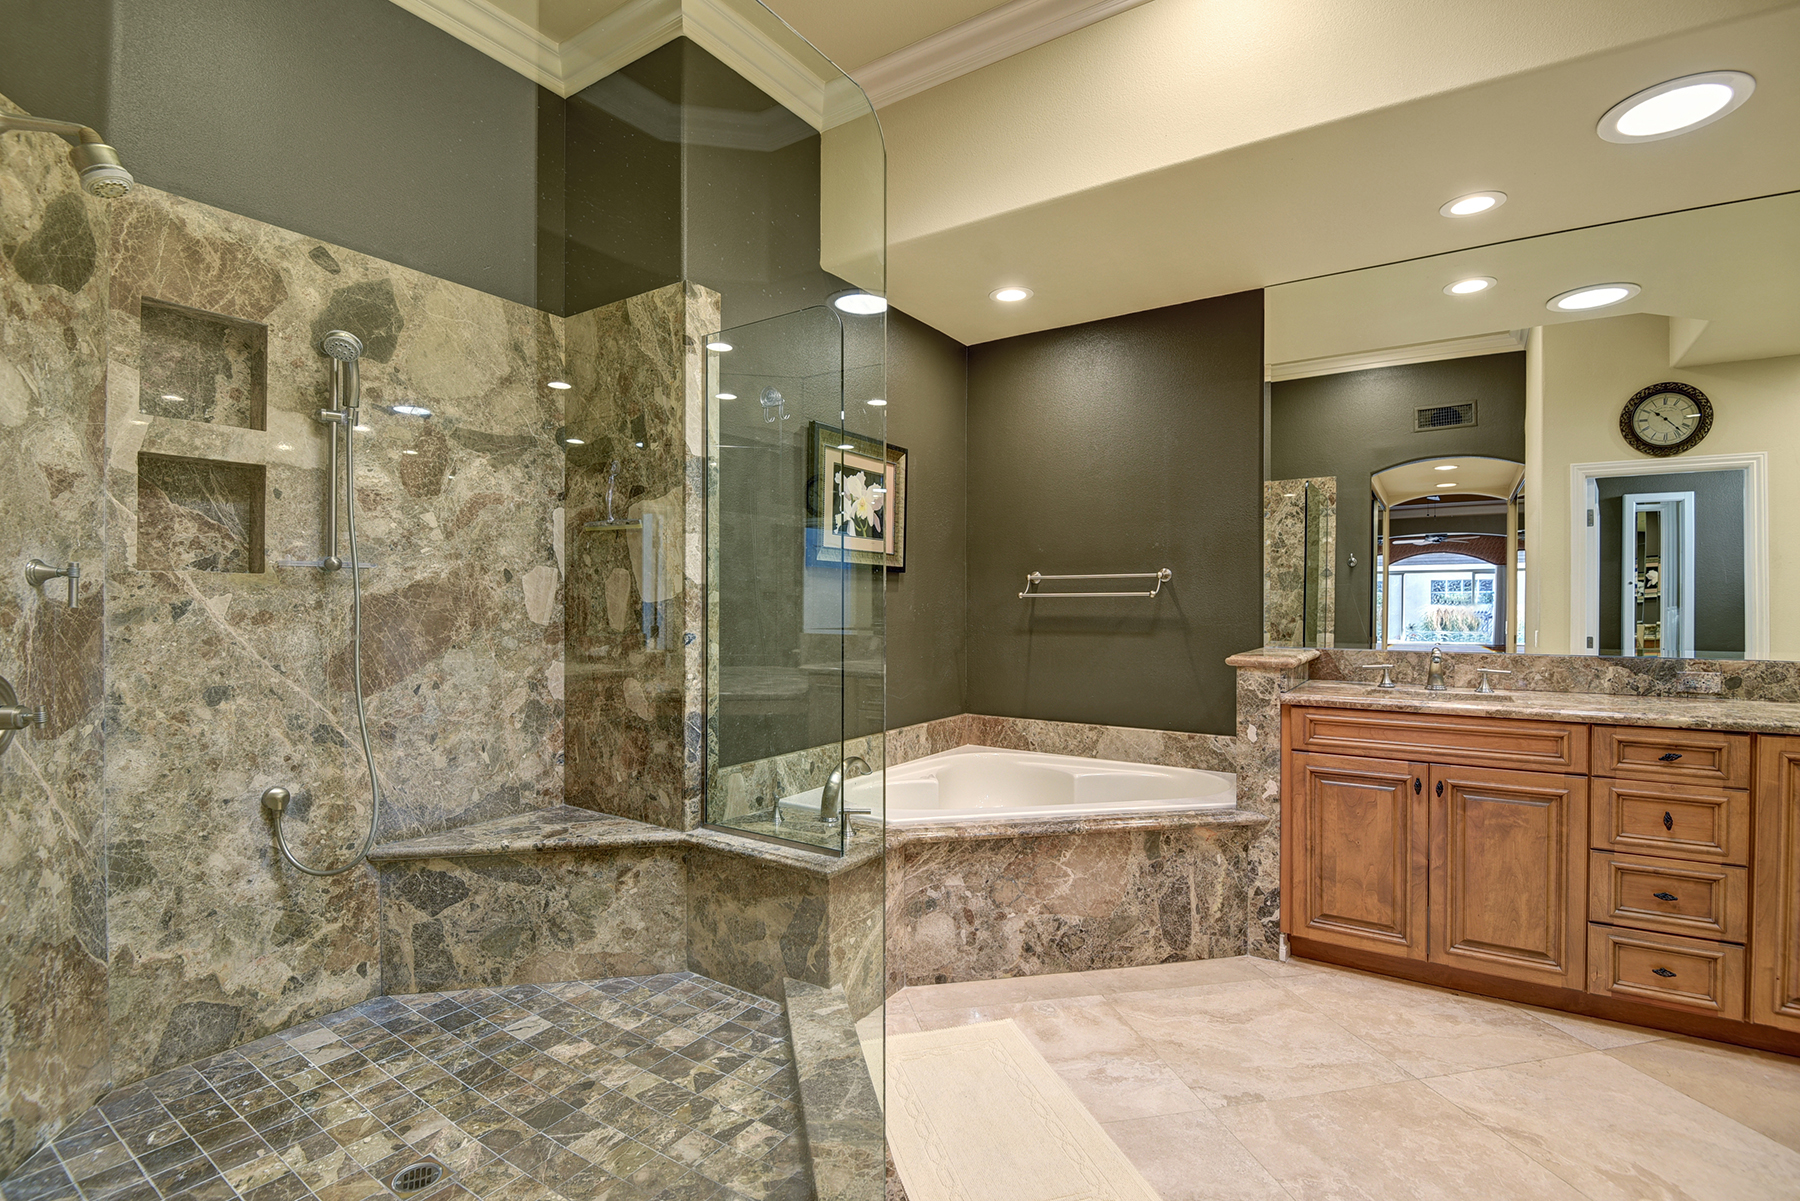 FBB44349-D443-3327-2B149E60BAD53282-MASTER BATHROOM RS.jpg